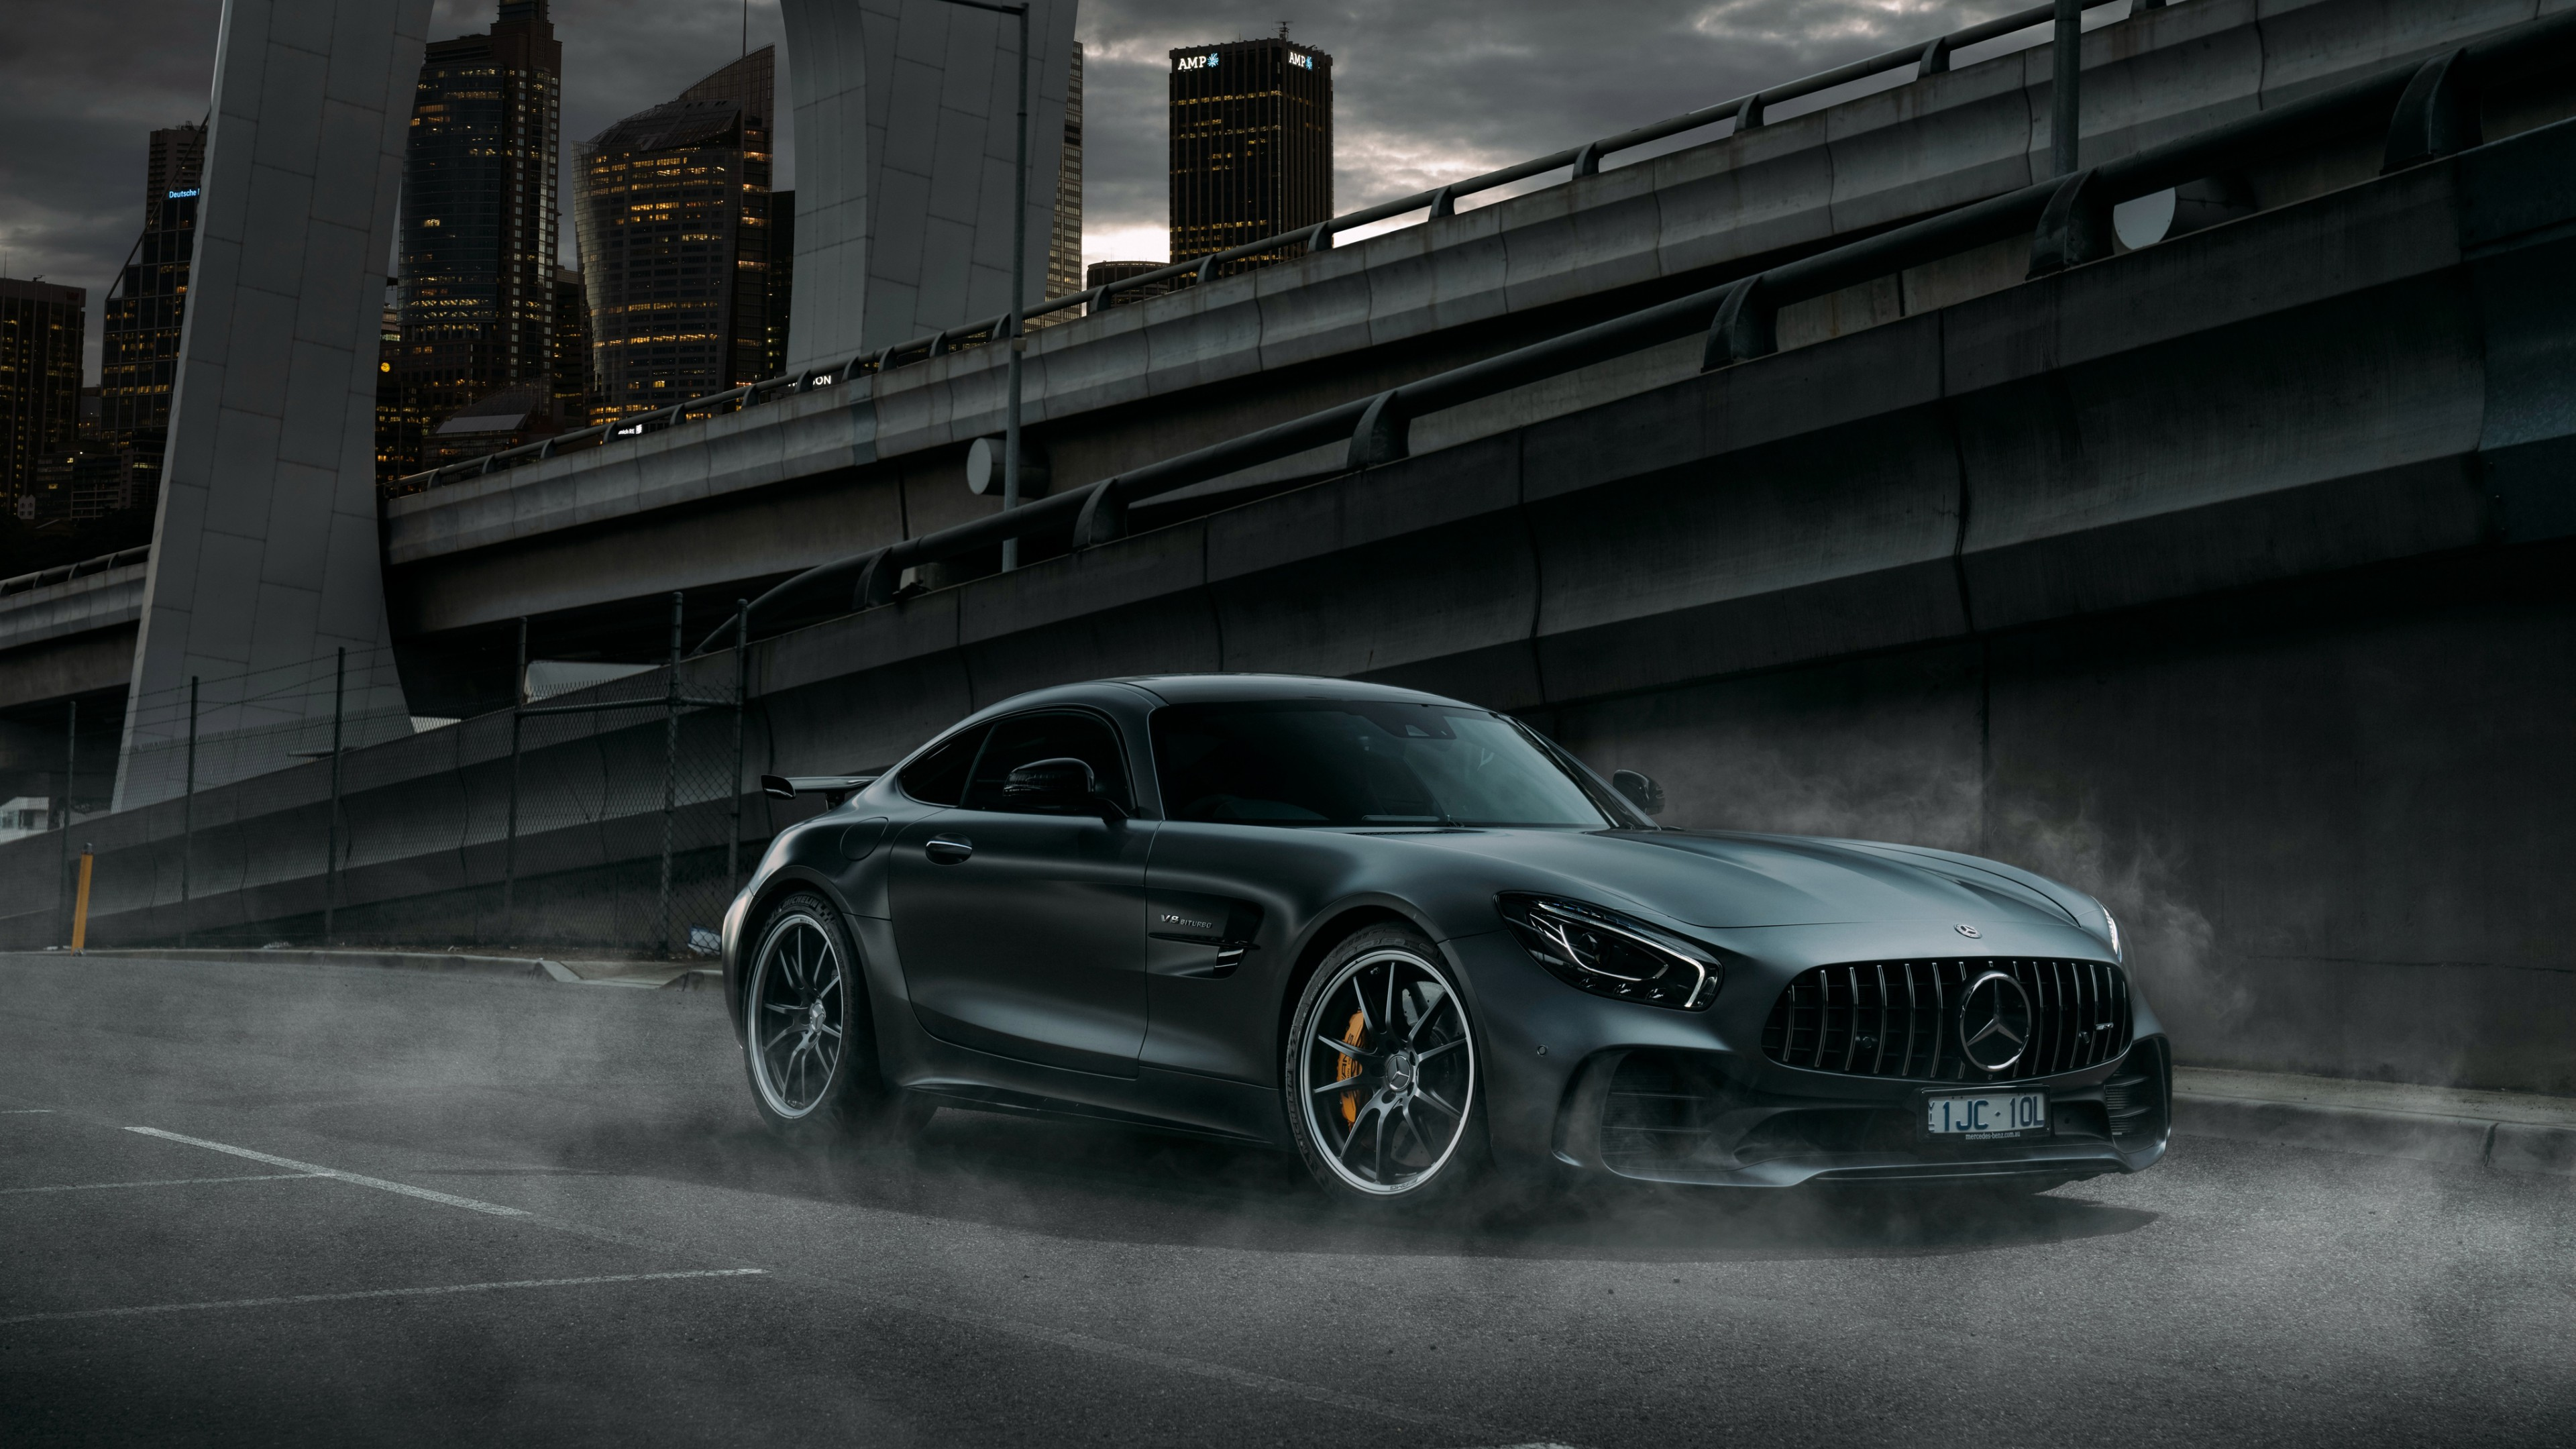 Free Download Mercedes Amg Gt And Benz Car Wallpaper For Desktop And